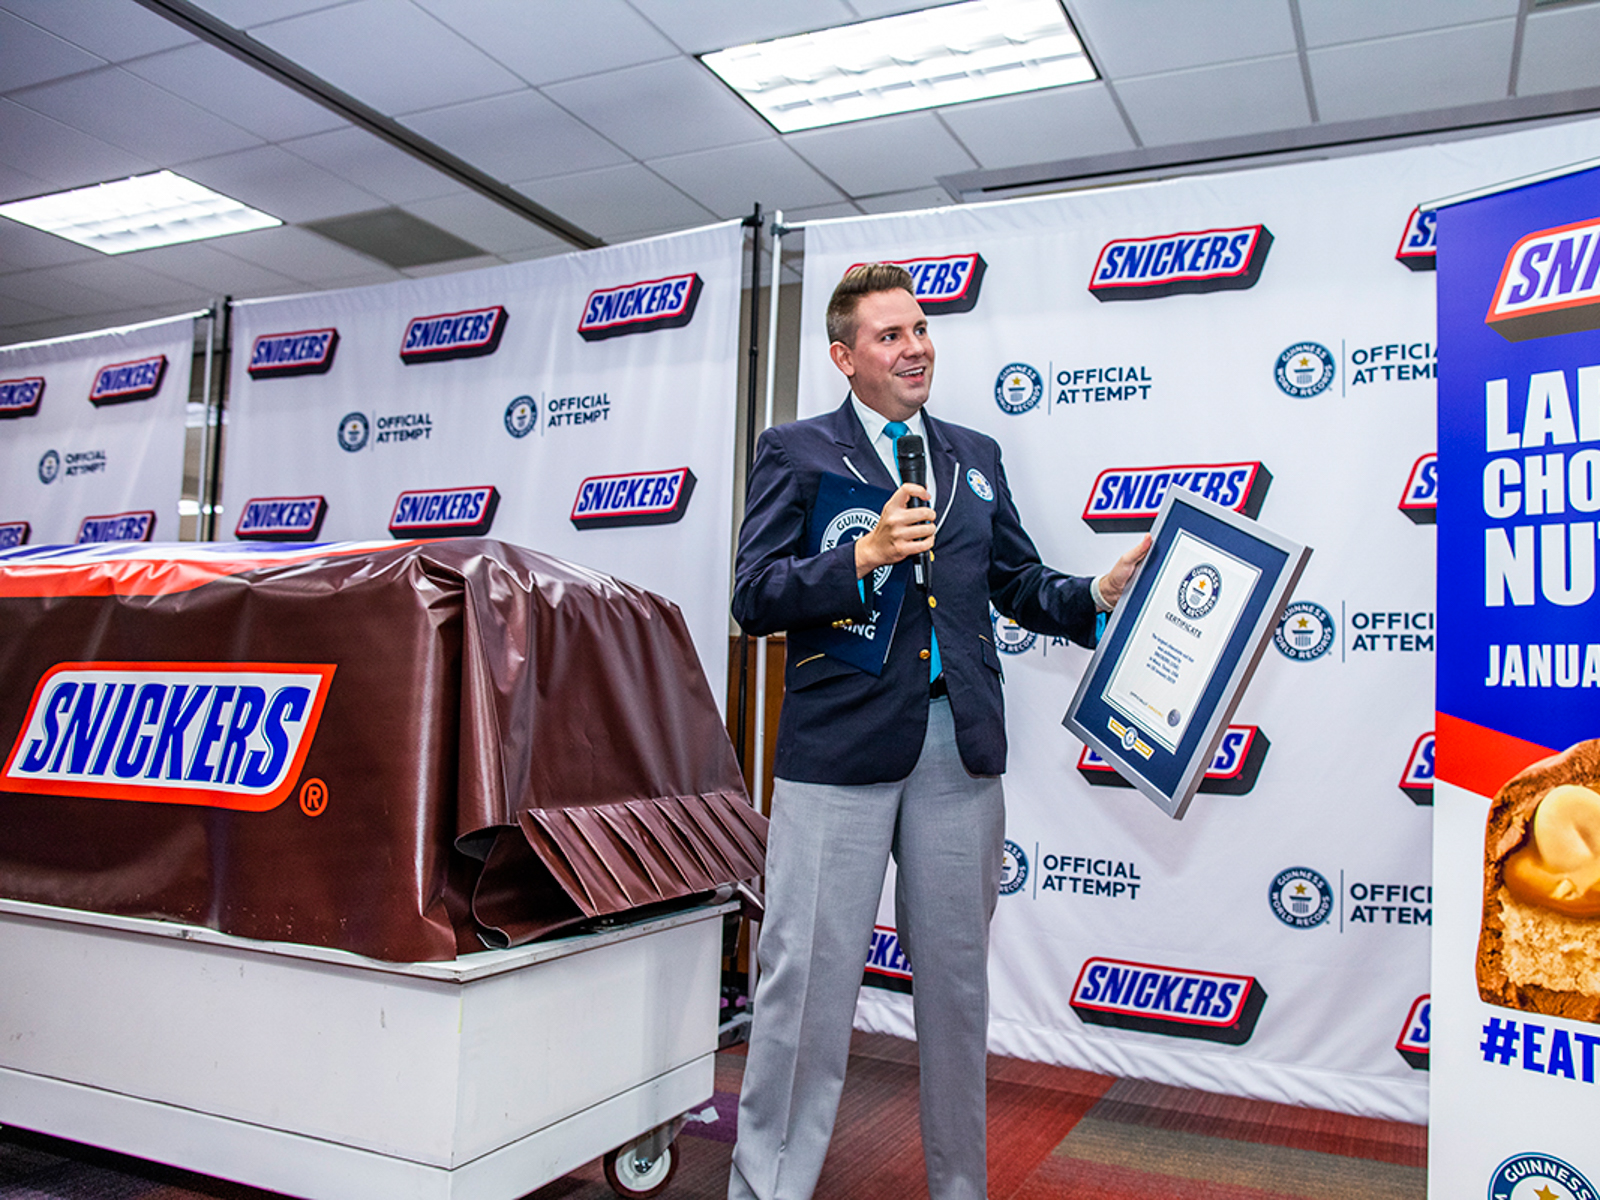 The Largest Snickers Bar in the World Weighs Over Two Metric Tons